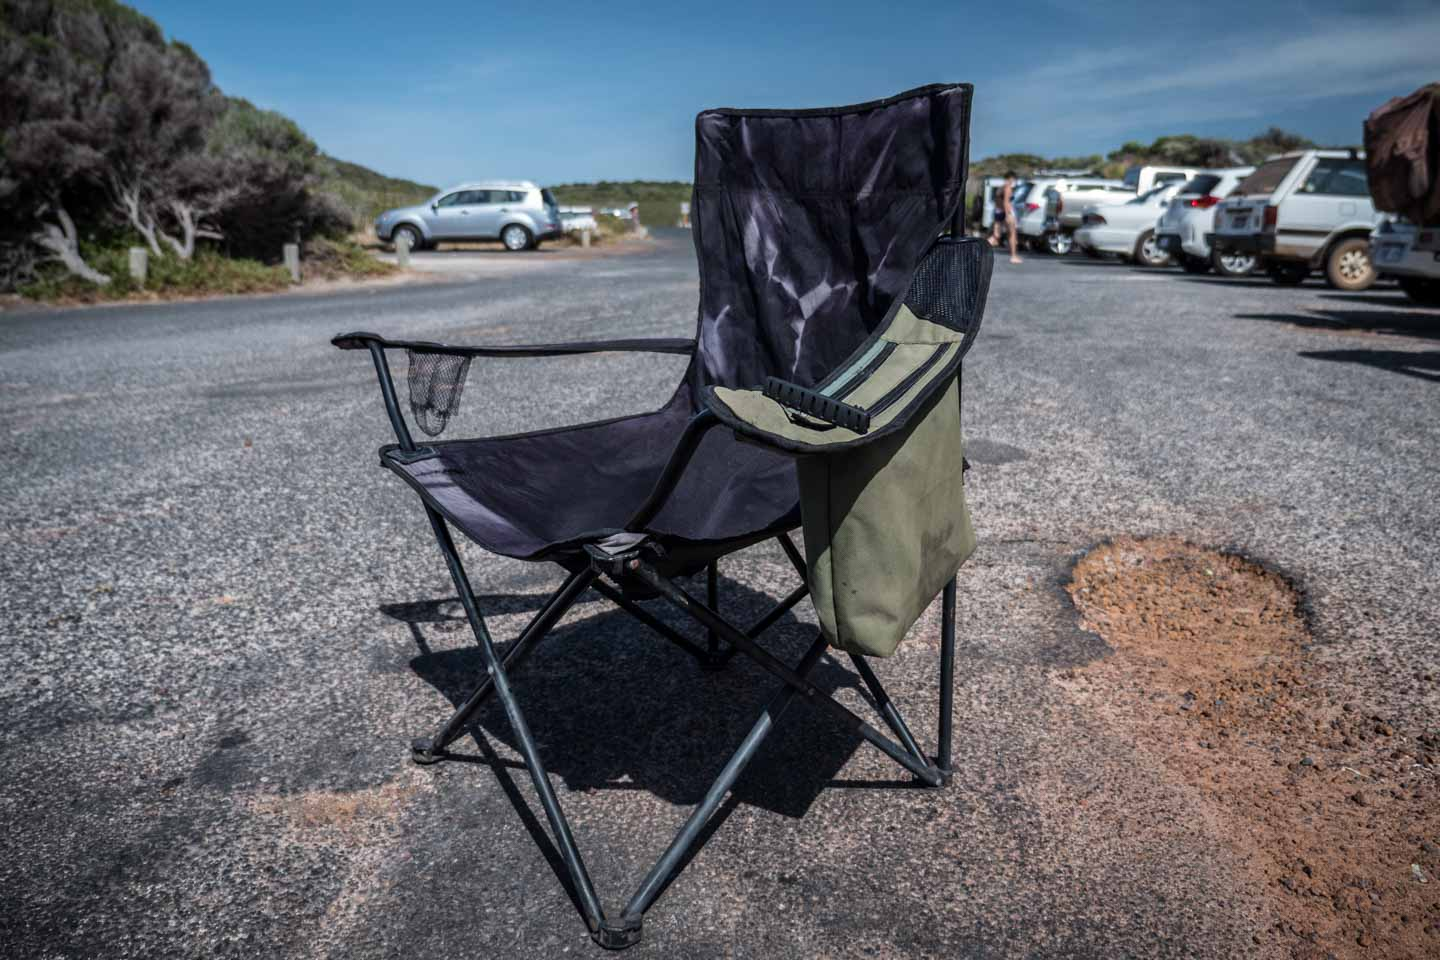 Reuse Recycle Recycling Camping Chair in Western Australia waste management YKUT YouKeepUsTraveling